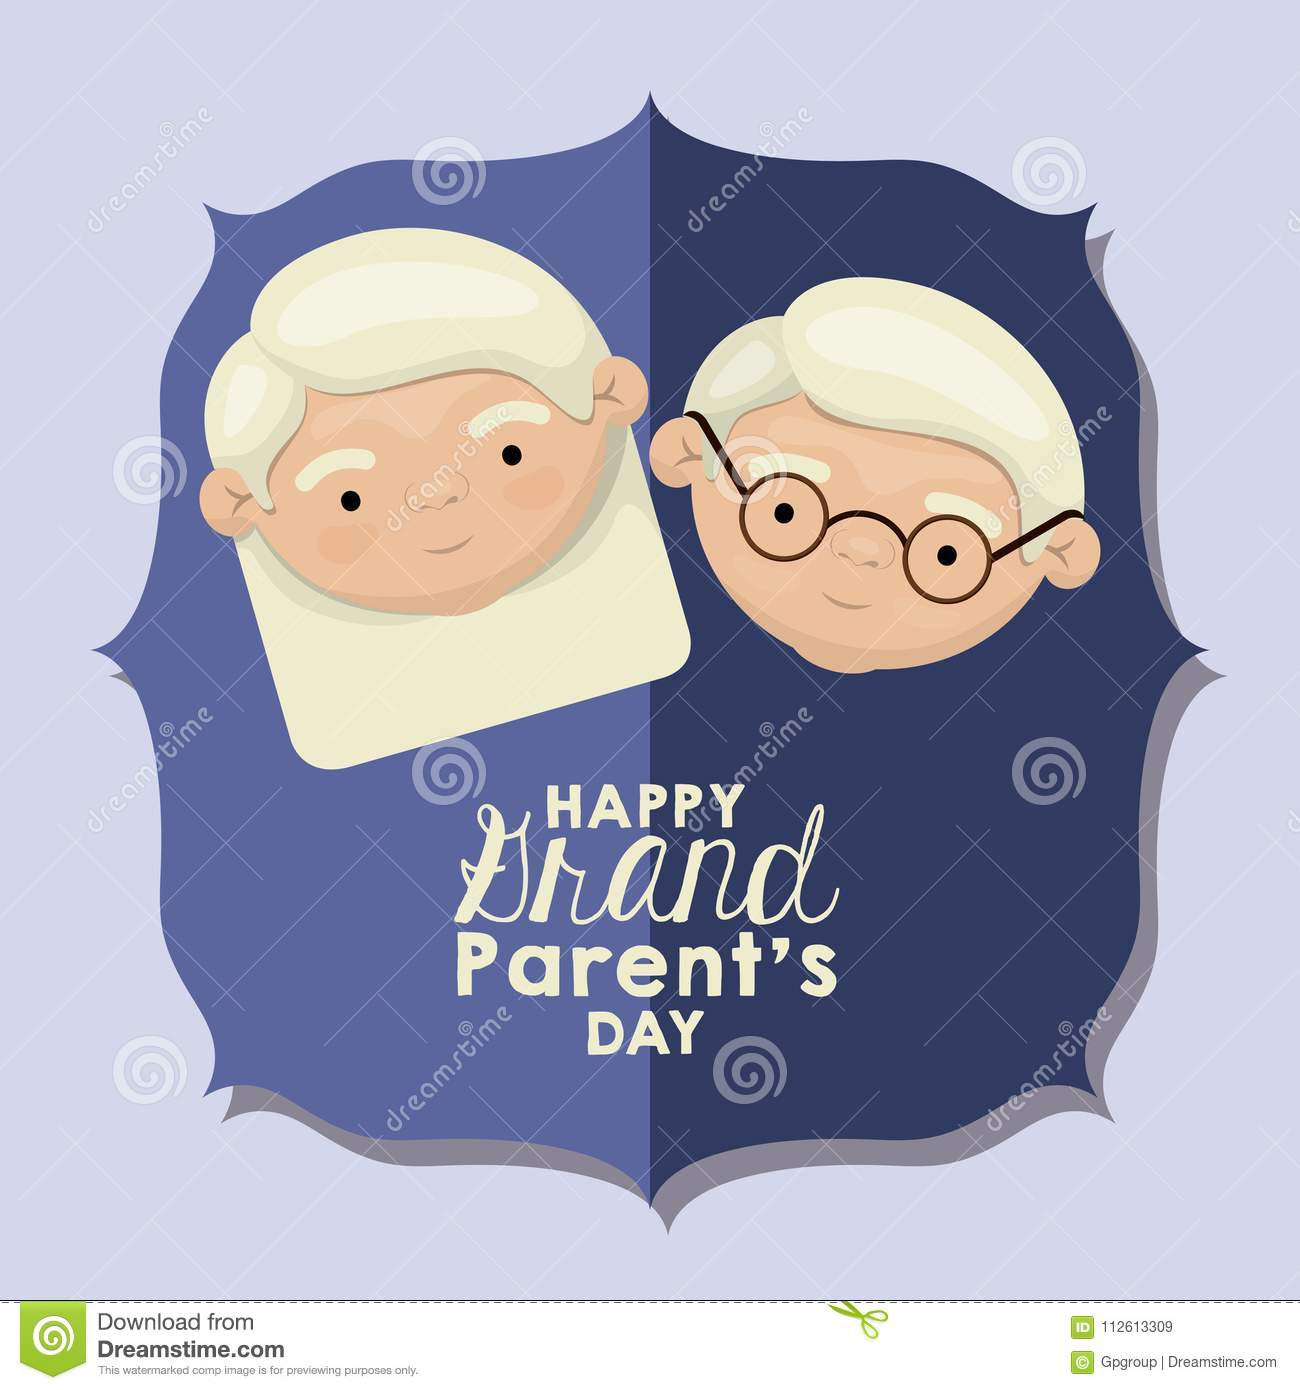 Color background of figure paper blue greeting card with caricature face happy grandparents day